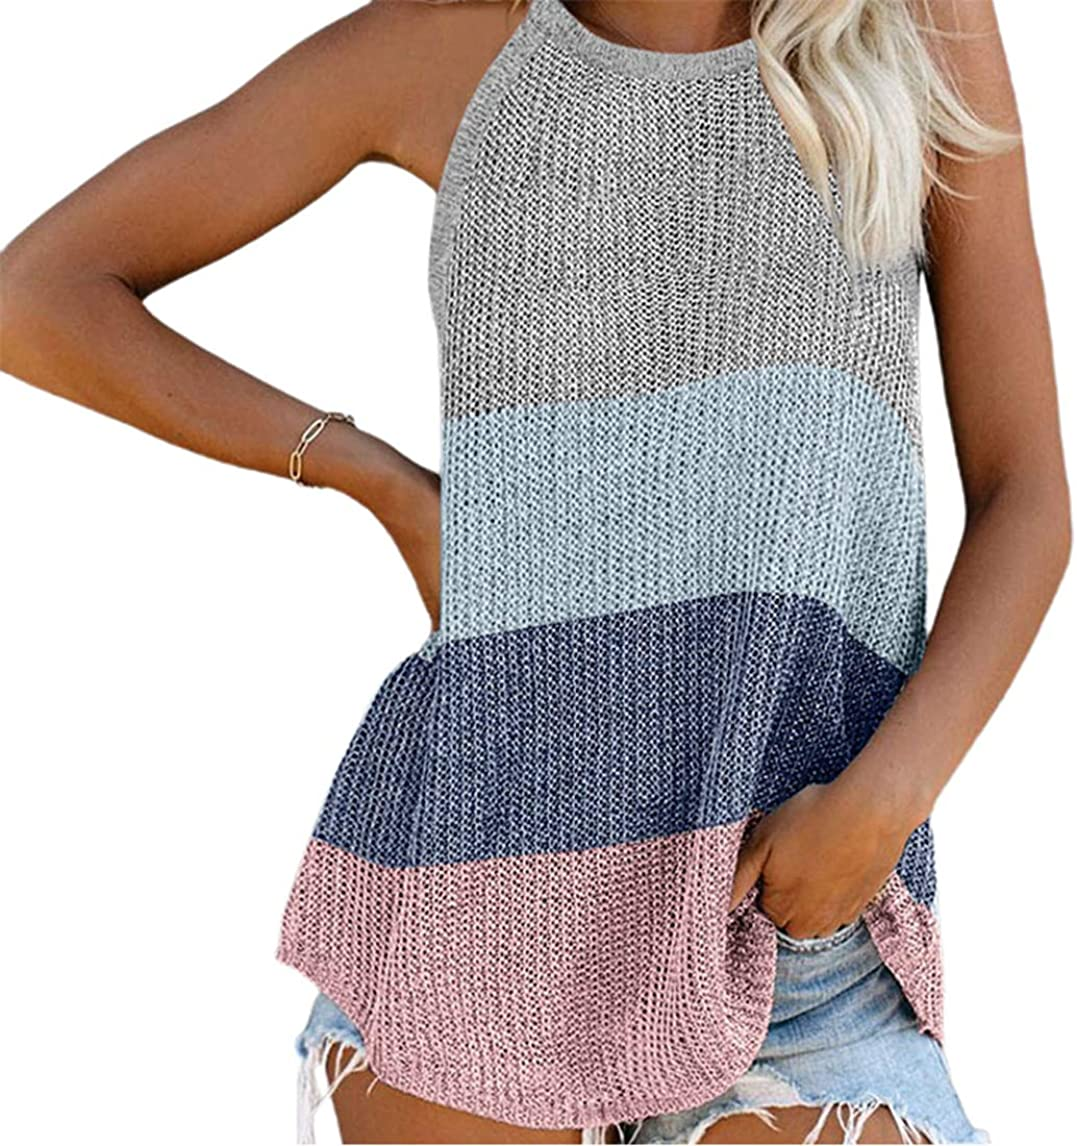 CHARTOU Women's Loose Halter Neck Color Block Sleeveless Knitted Vest Tops